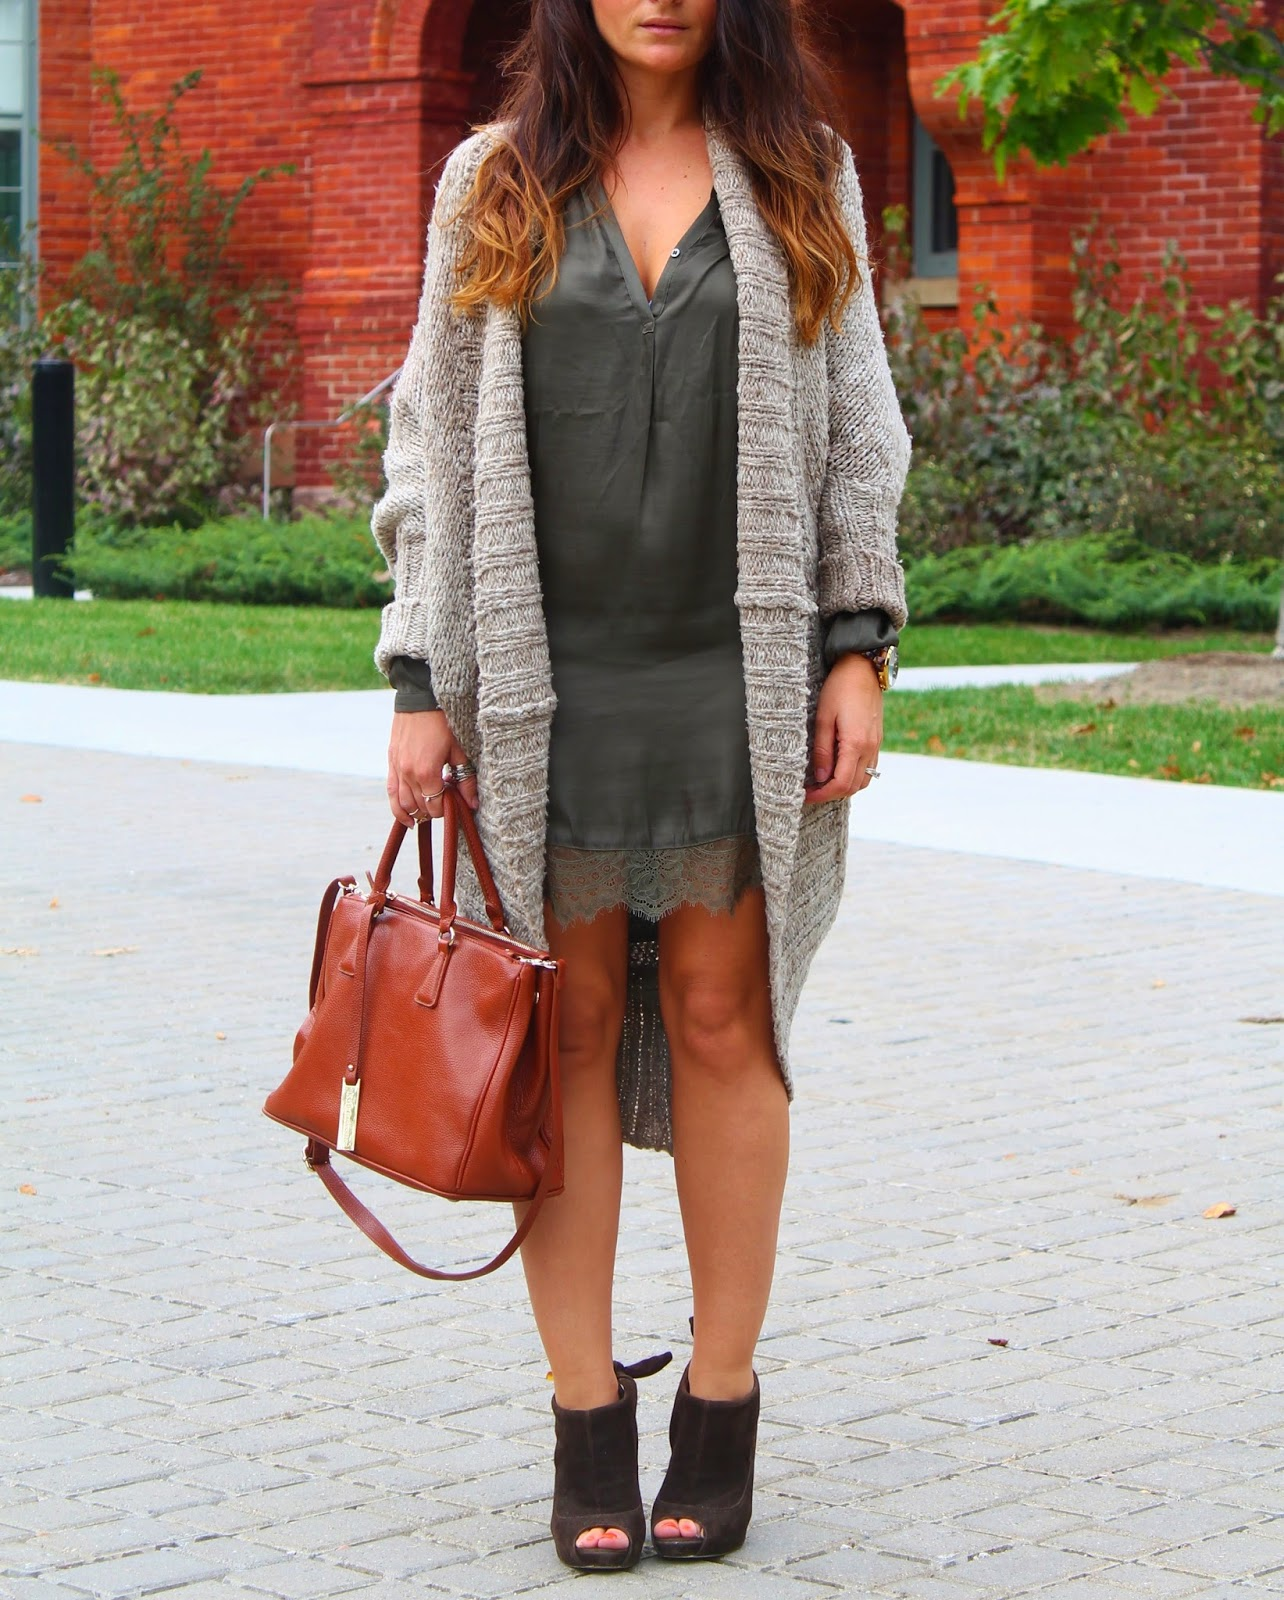 uk blogger, Fall outfit, silk dress, oversized sweater, olive green dress, toronto street style, blogerke, jesenja moda, canadian fashion blogger